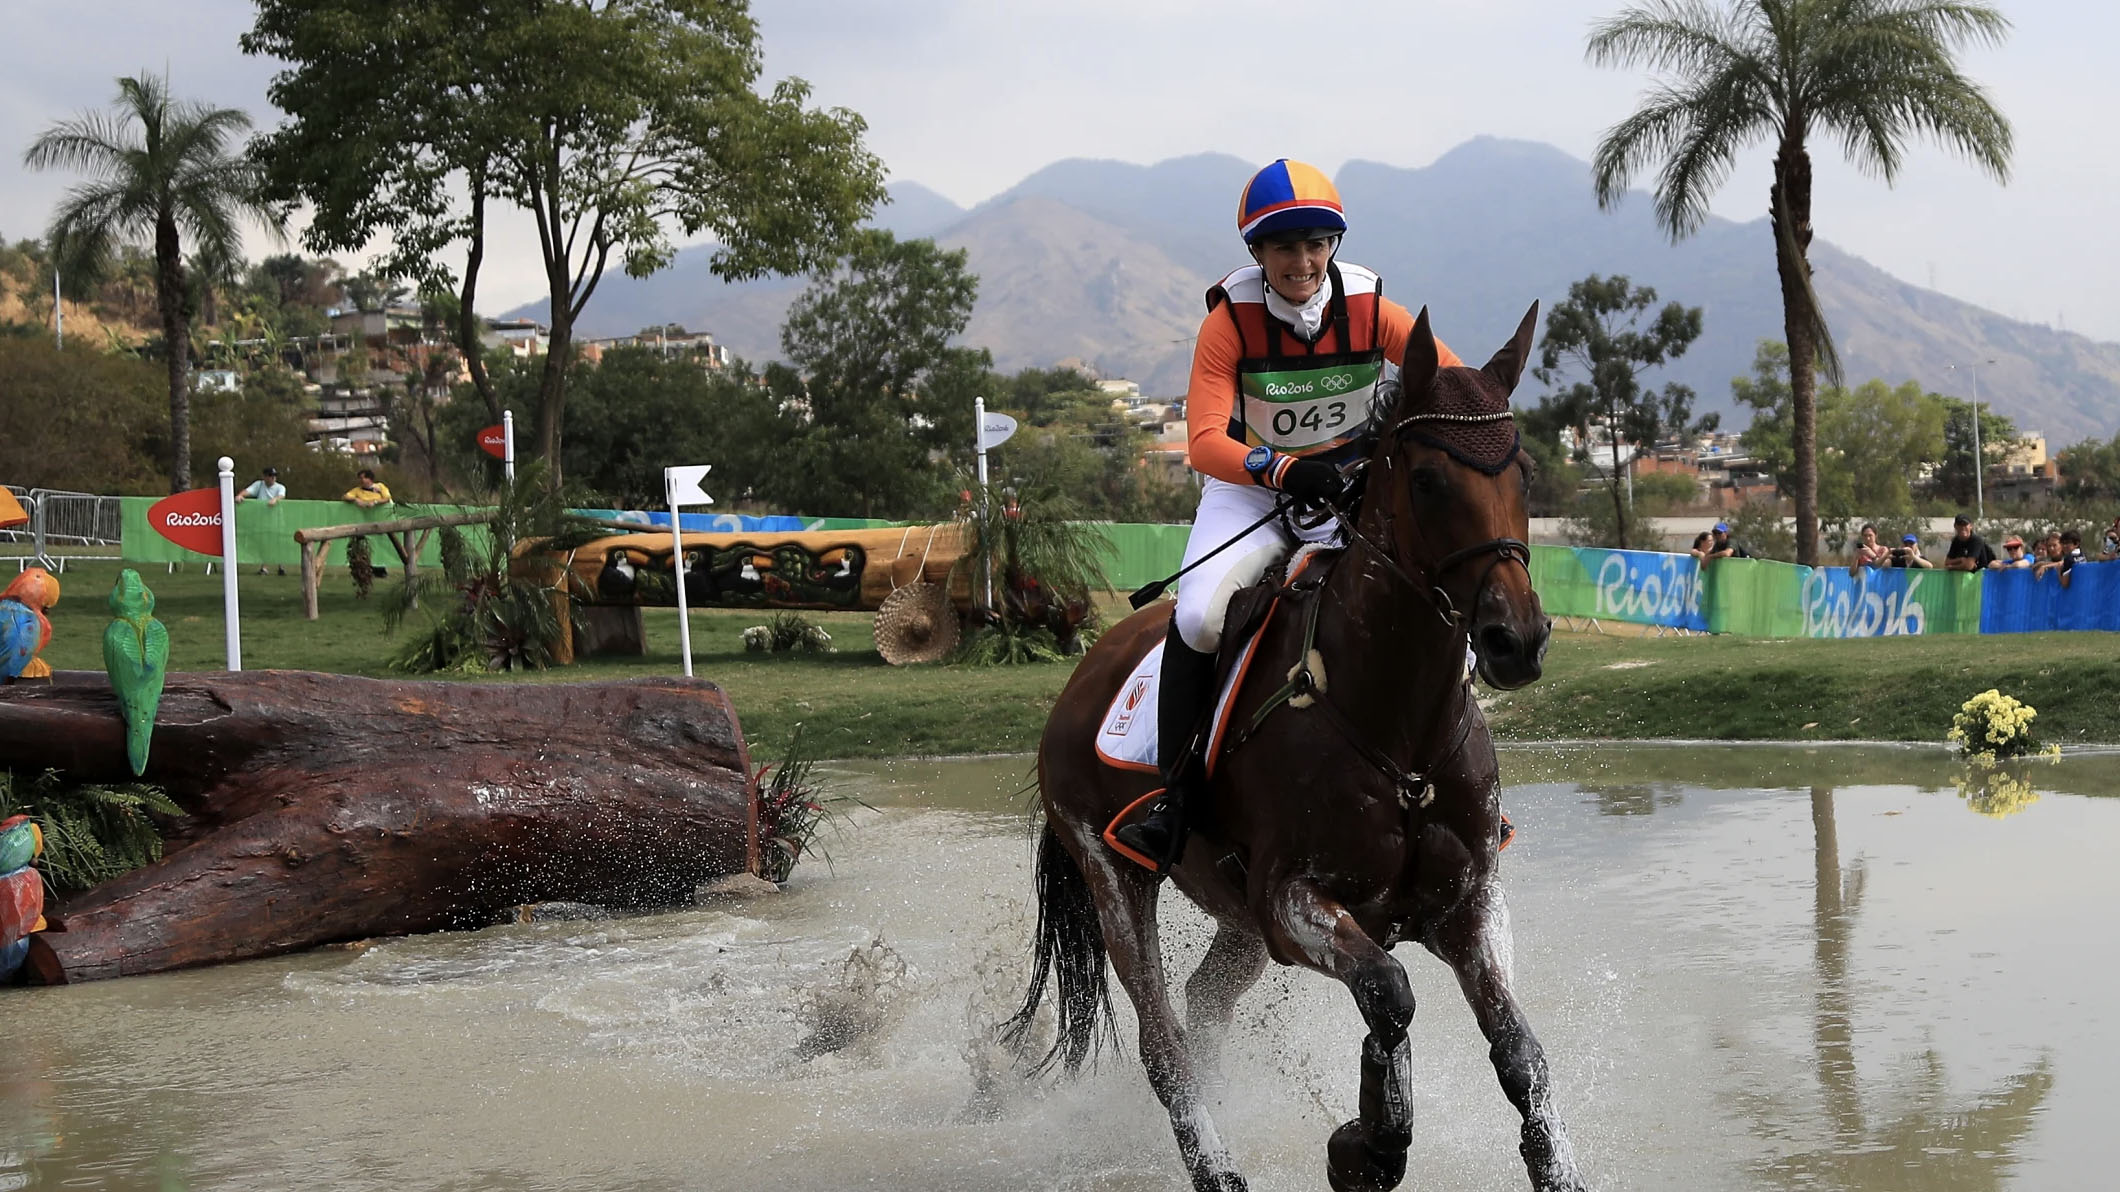 Equestrian and the Olympics